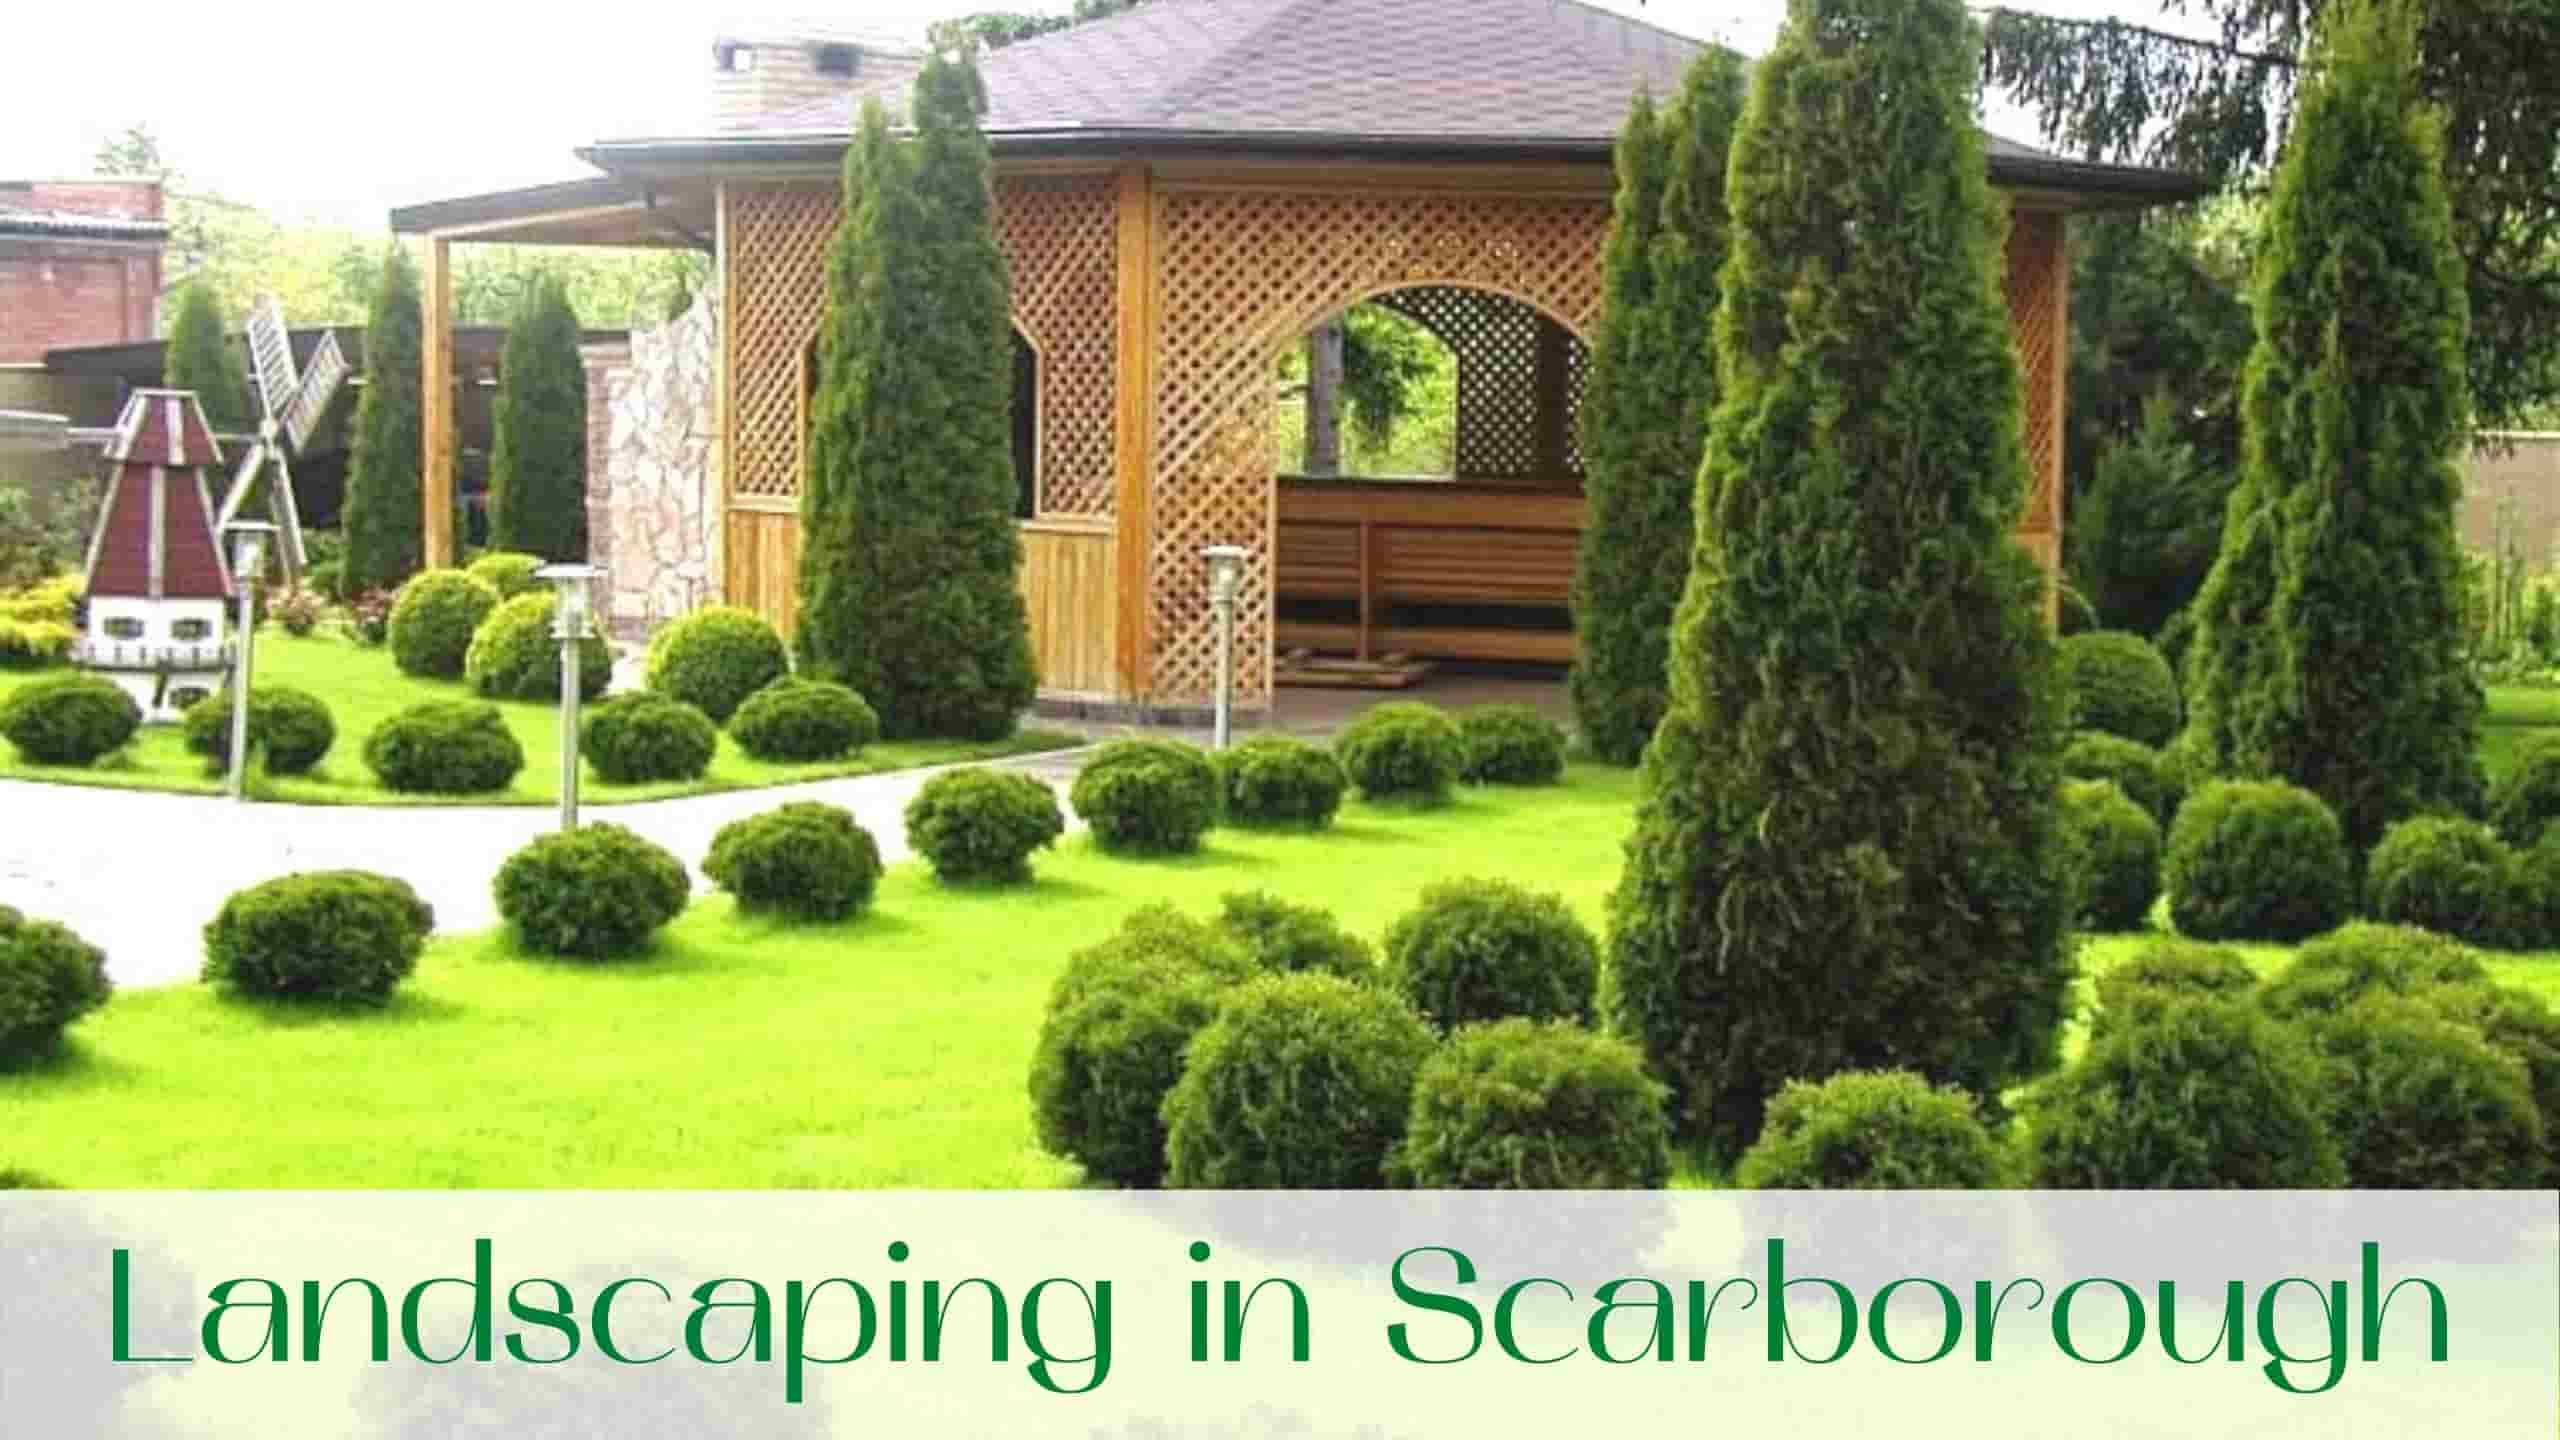 image-Landscaping-in-Scarborough